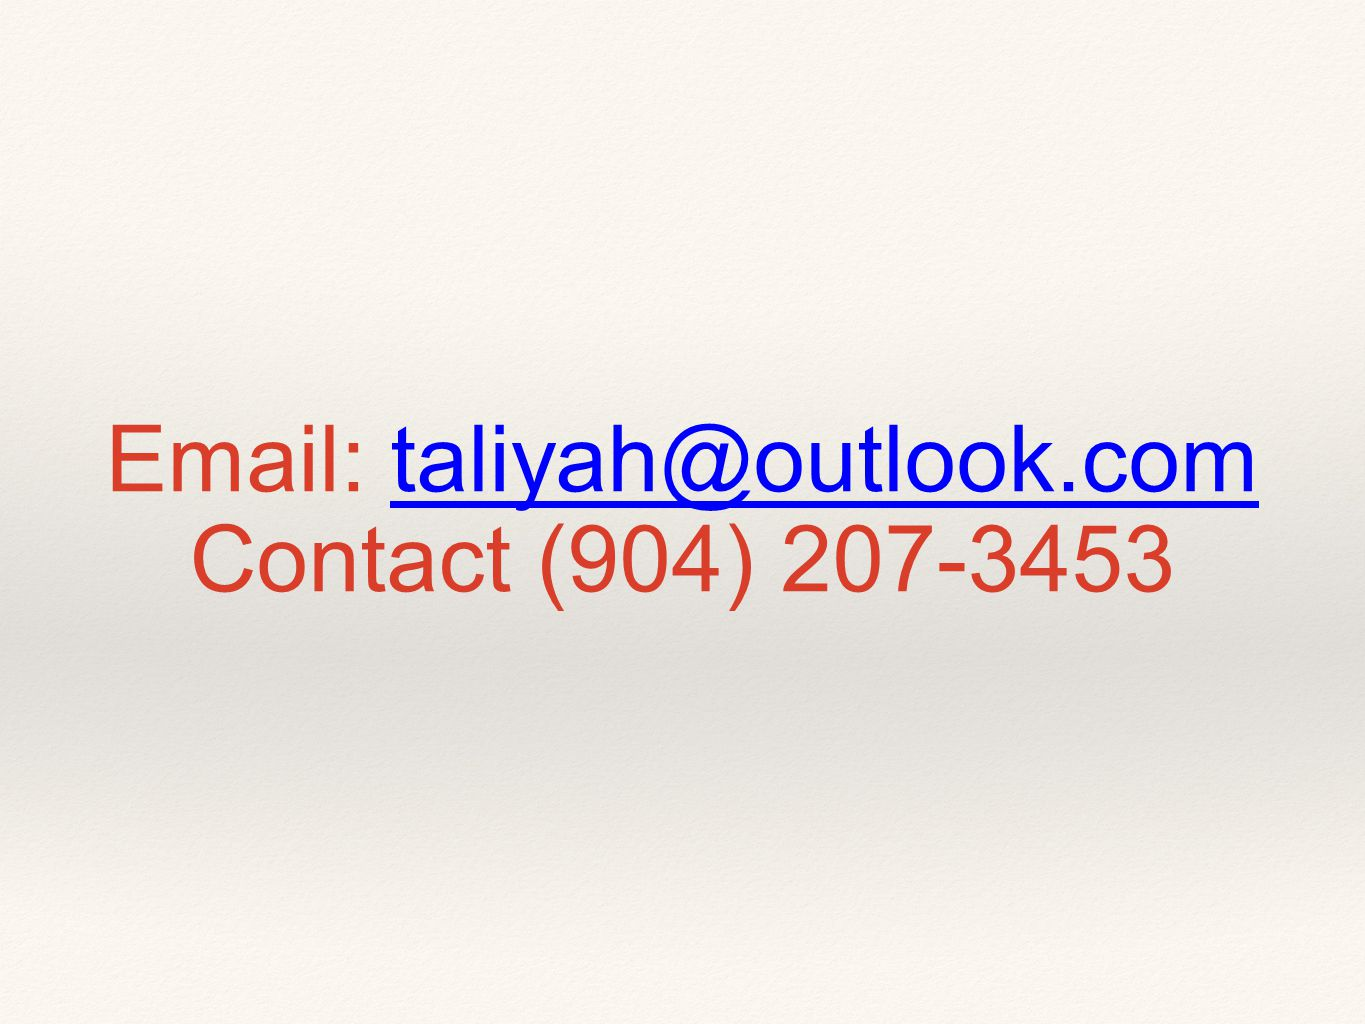 Email: taliyah@outlook.com Contact (904) 207-3453